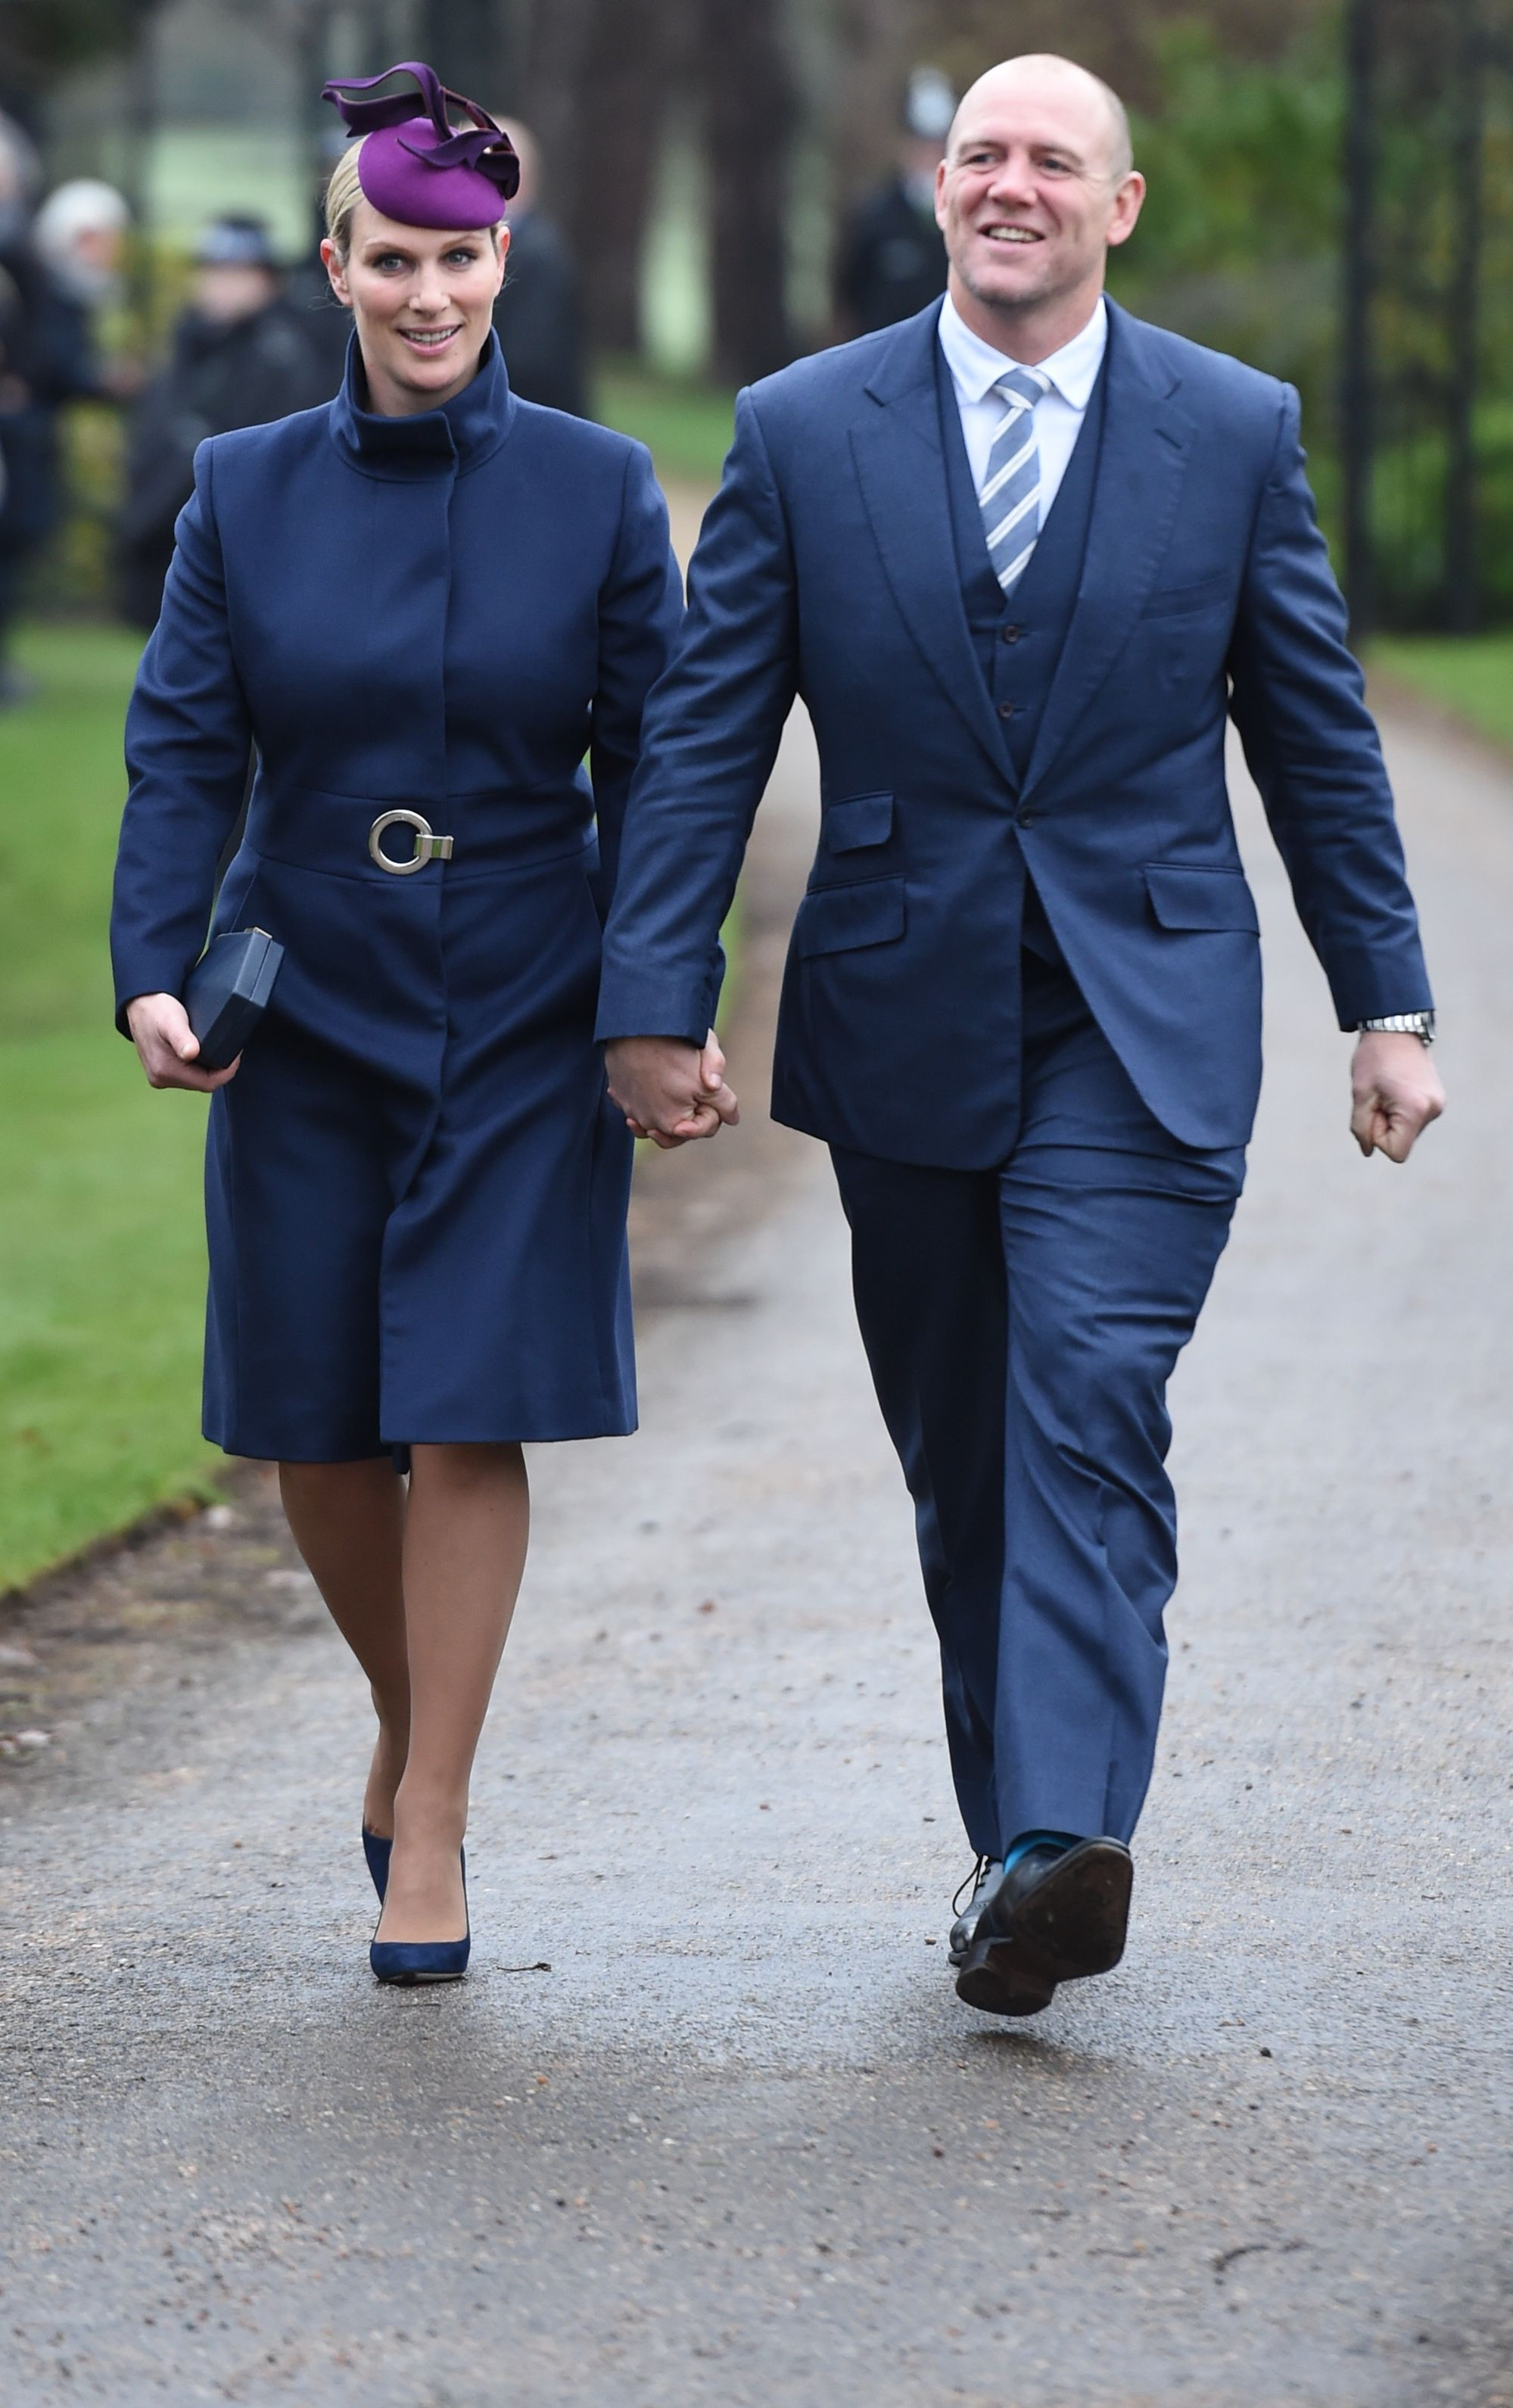 Zara Tindall paired a belted coat dress with a violet fascinator and a navy clutch and pumps to attend the Christmas Day church service on the Sandringham estate.